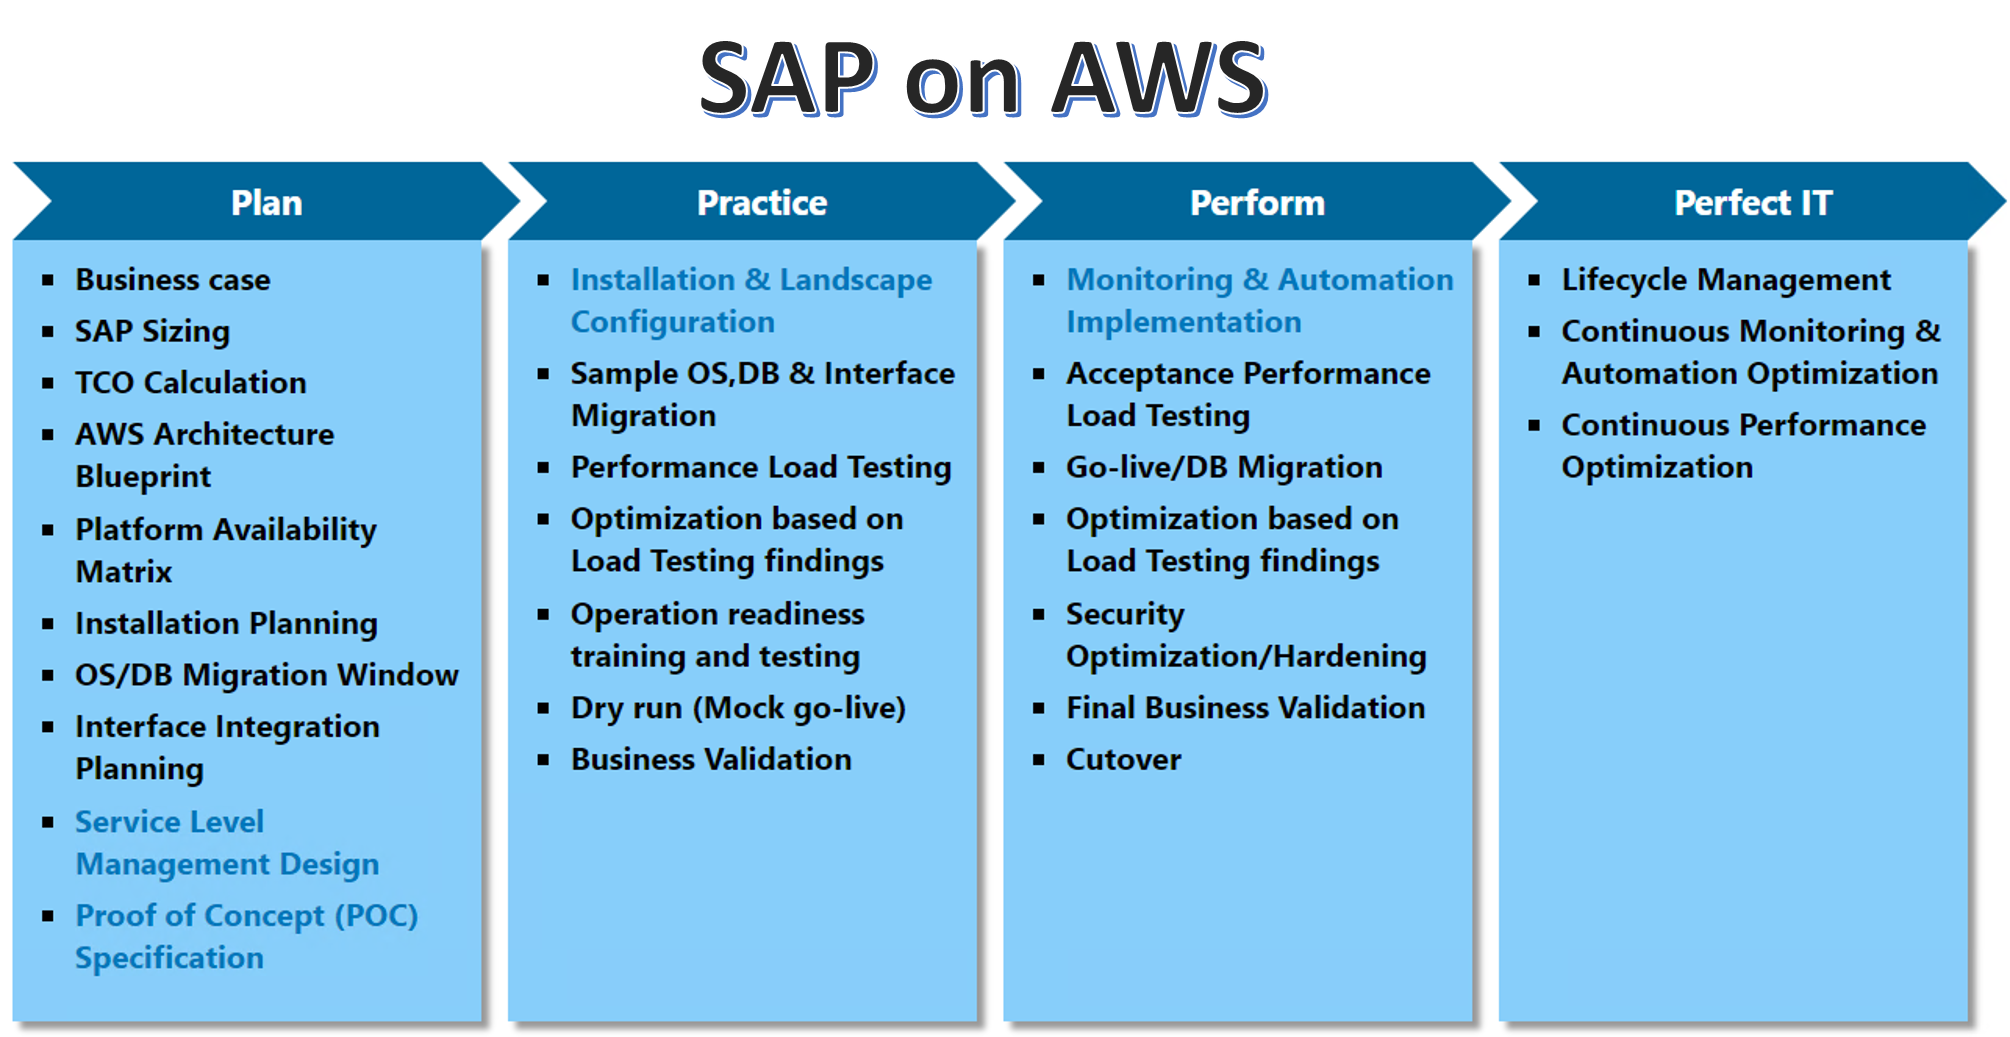 It conductor cloud solution to automate monitor manage the easiest migration to sap on aws malvernweather Images